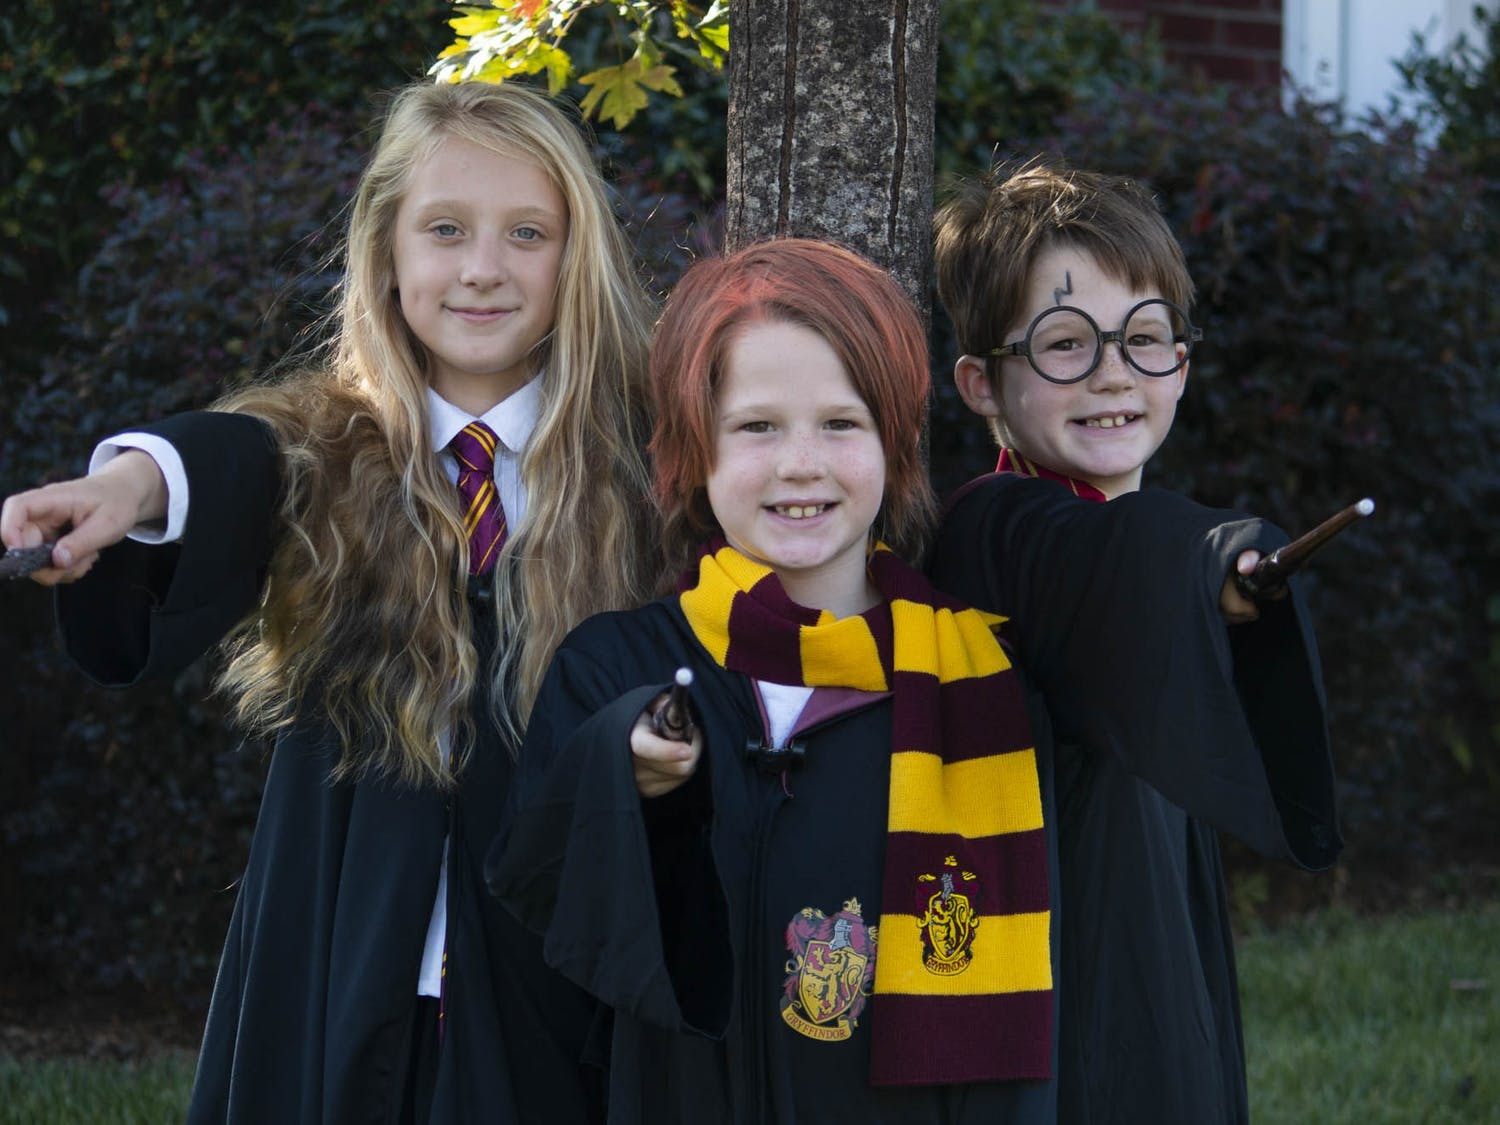 From left to right: Amelia, eight and a half, Evan, nine, and Will, nine, point their wands in preparation for Halloween night in Durham on Thursday, Oct. 22, 2020. Amelia lives across the street from Evan and Will, who are identical twins and just five and a half months older than Amelia. The three, who have all known each other their whole lives, will be going as Harry, Hermione and Ron from Harry Potter. They all agreed that they are most excited to get candy and play corn hole on Halloween.